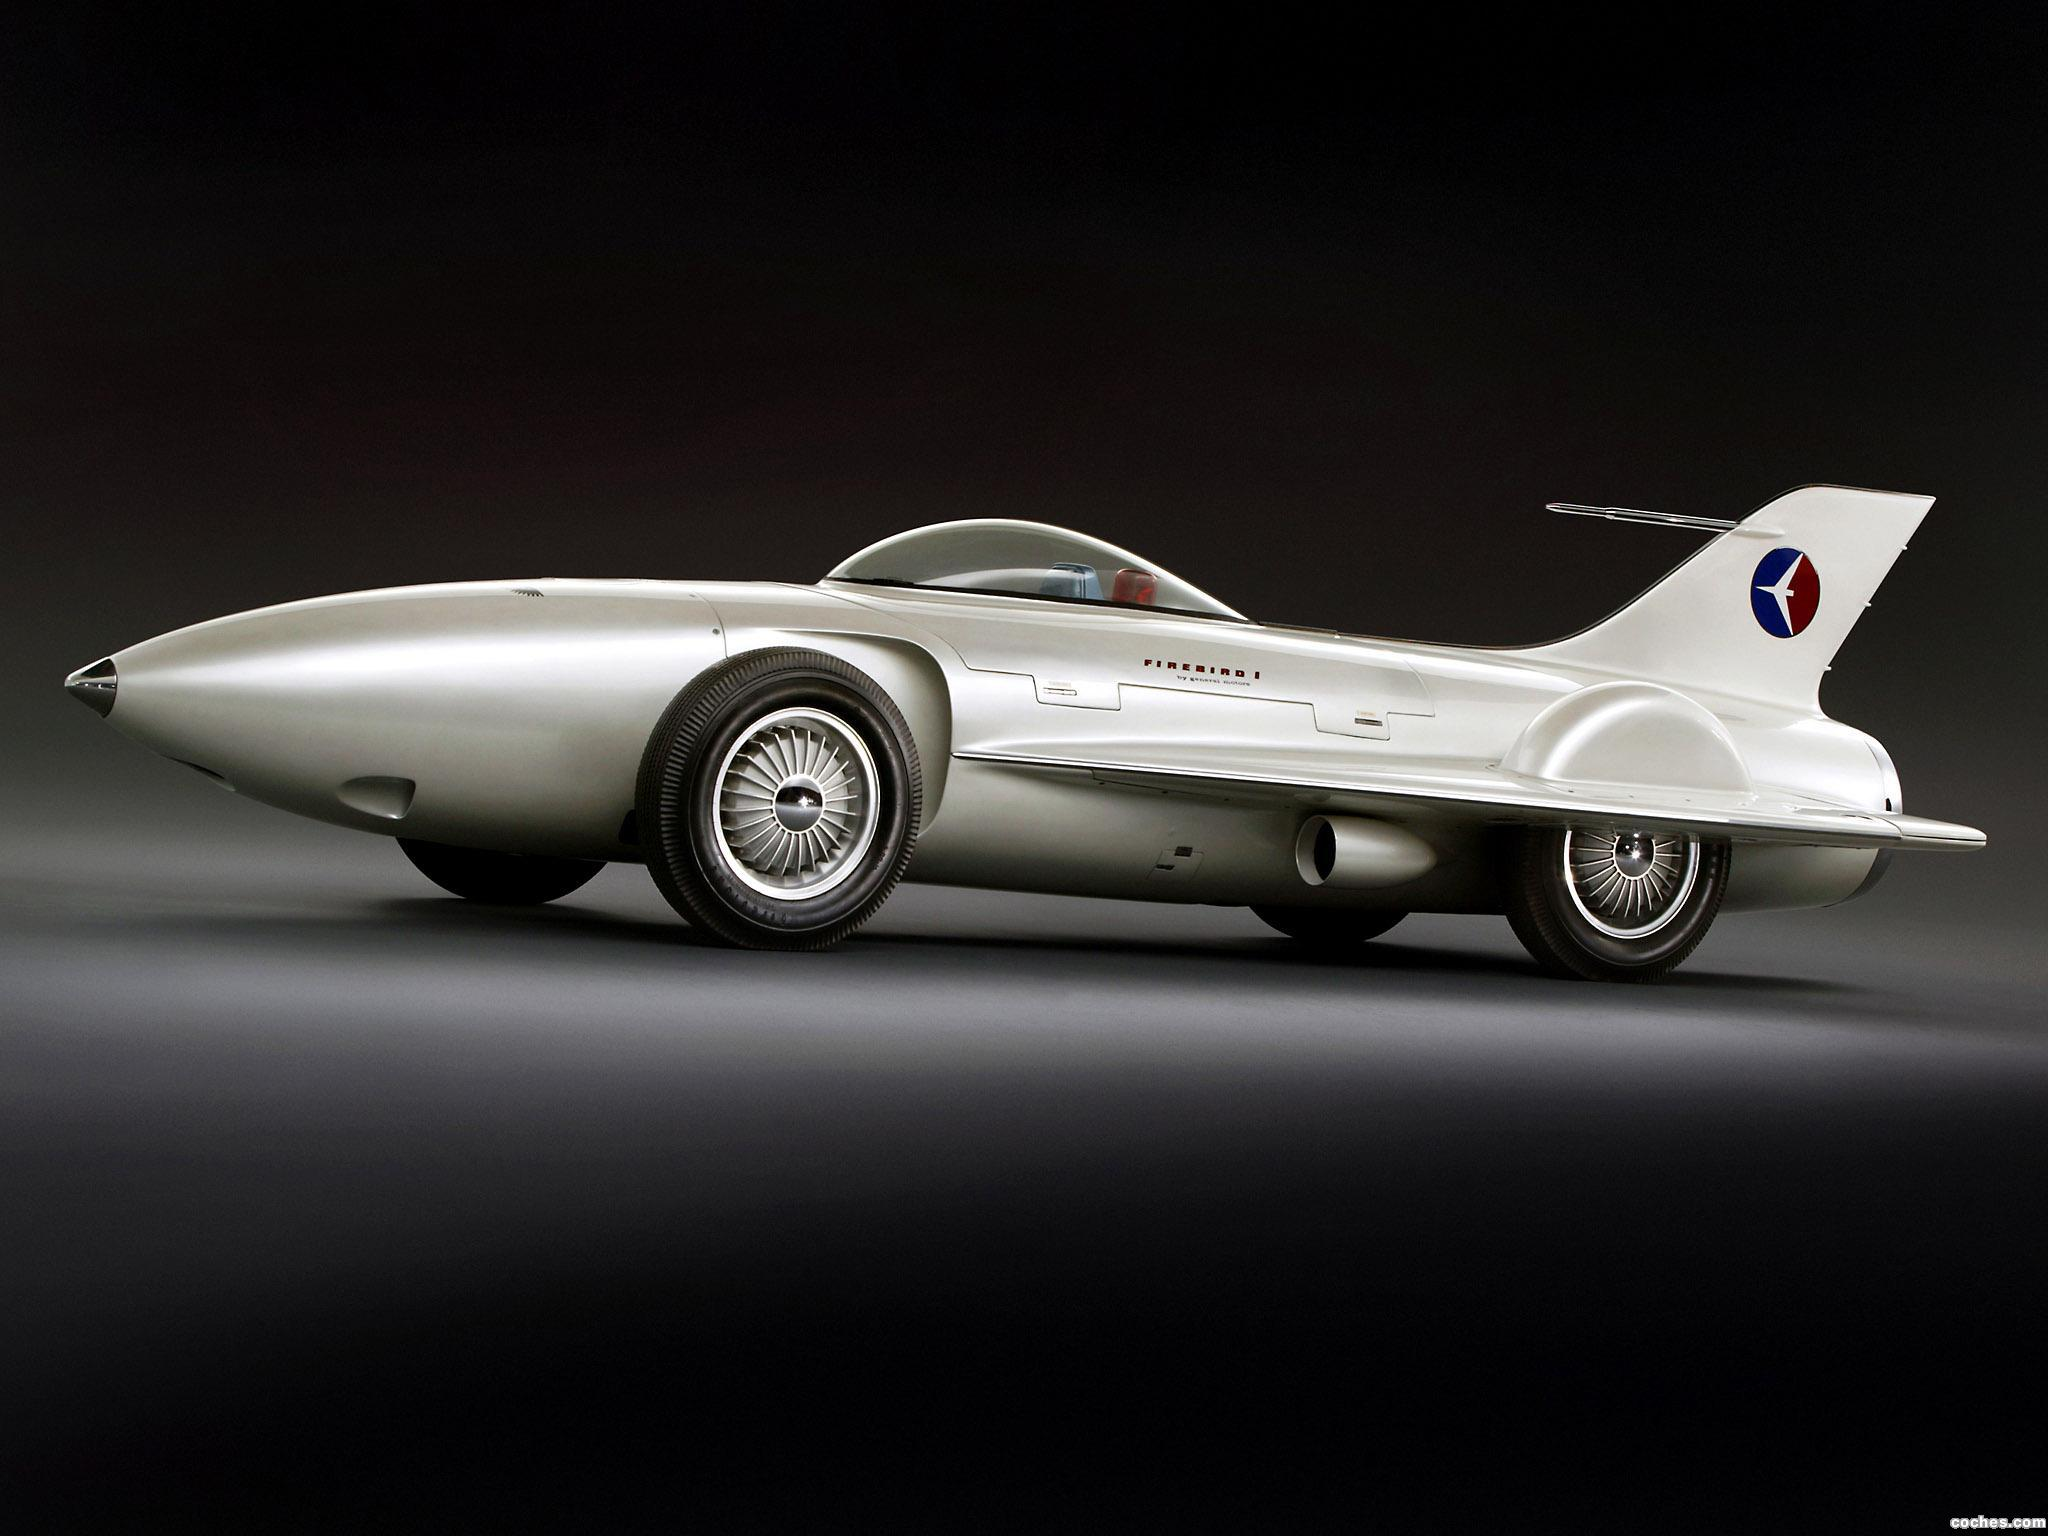 Foto 0 de GM Firebird I Concept Car 1953